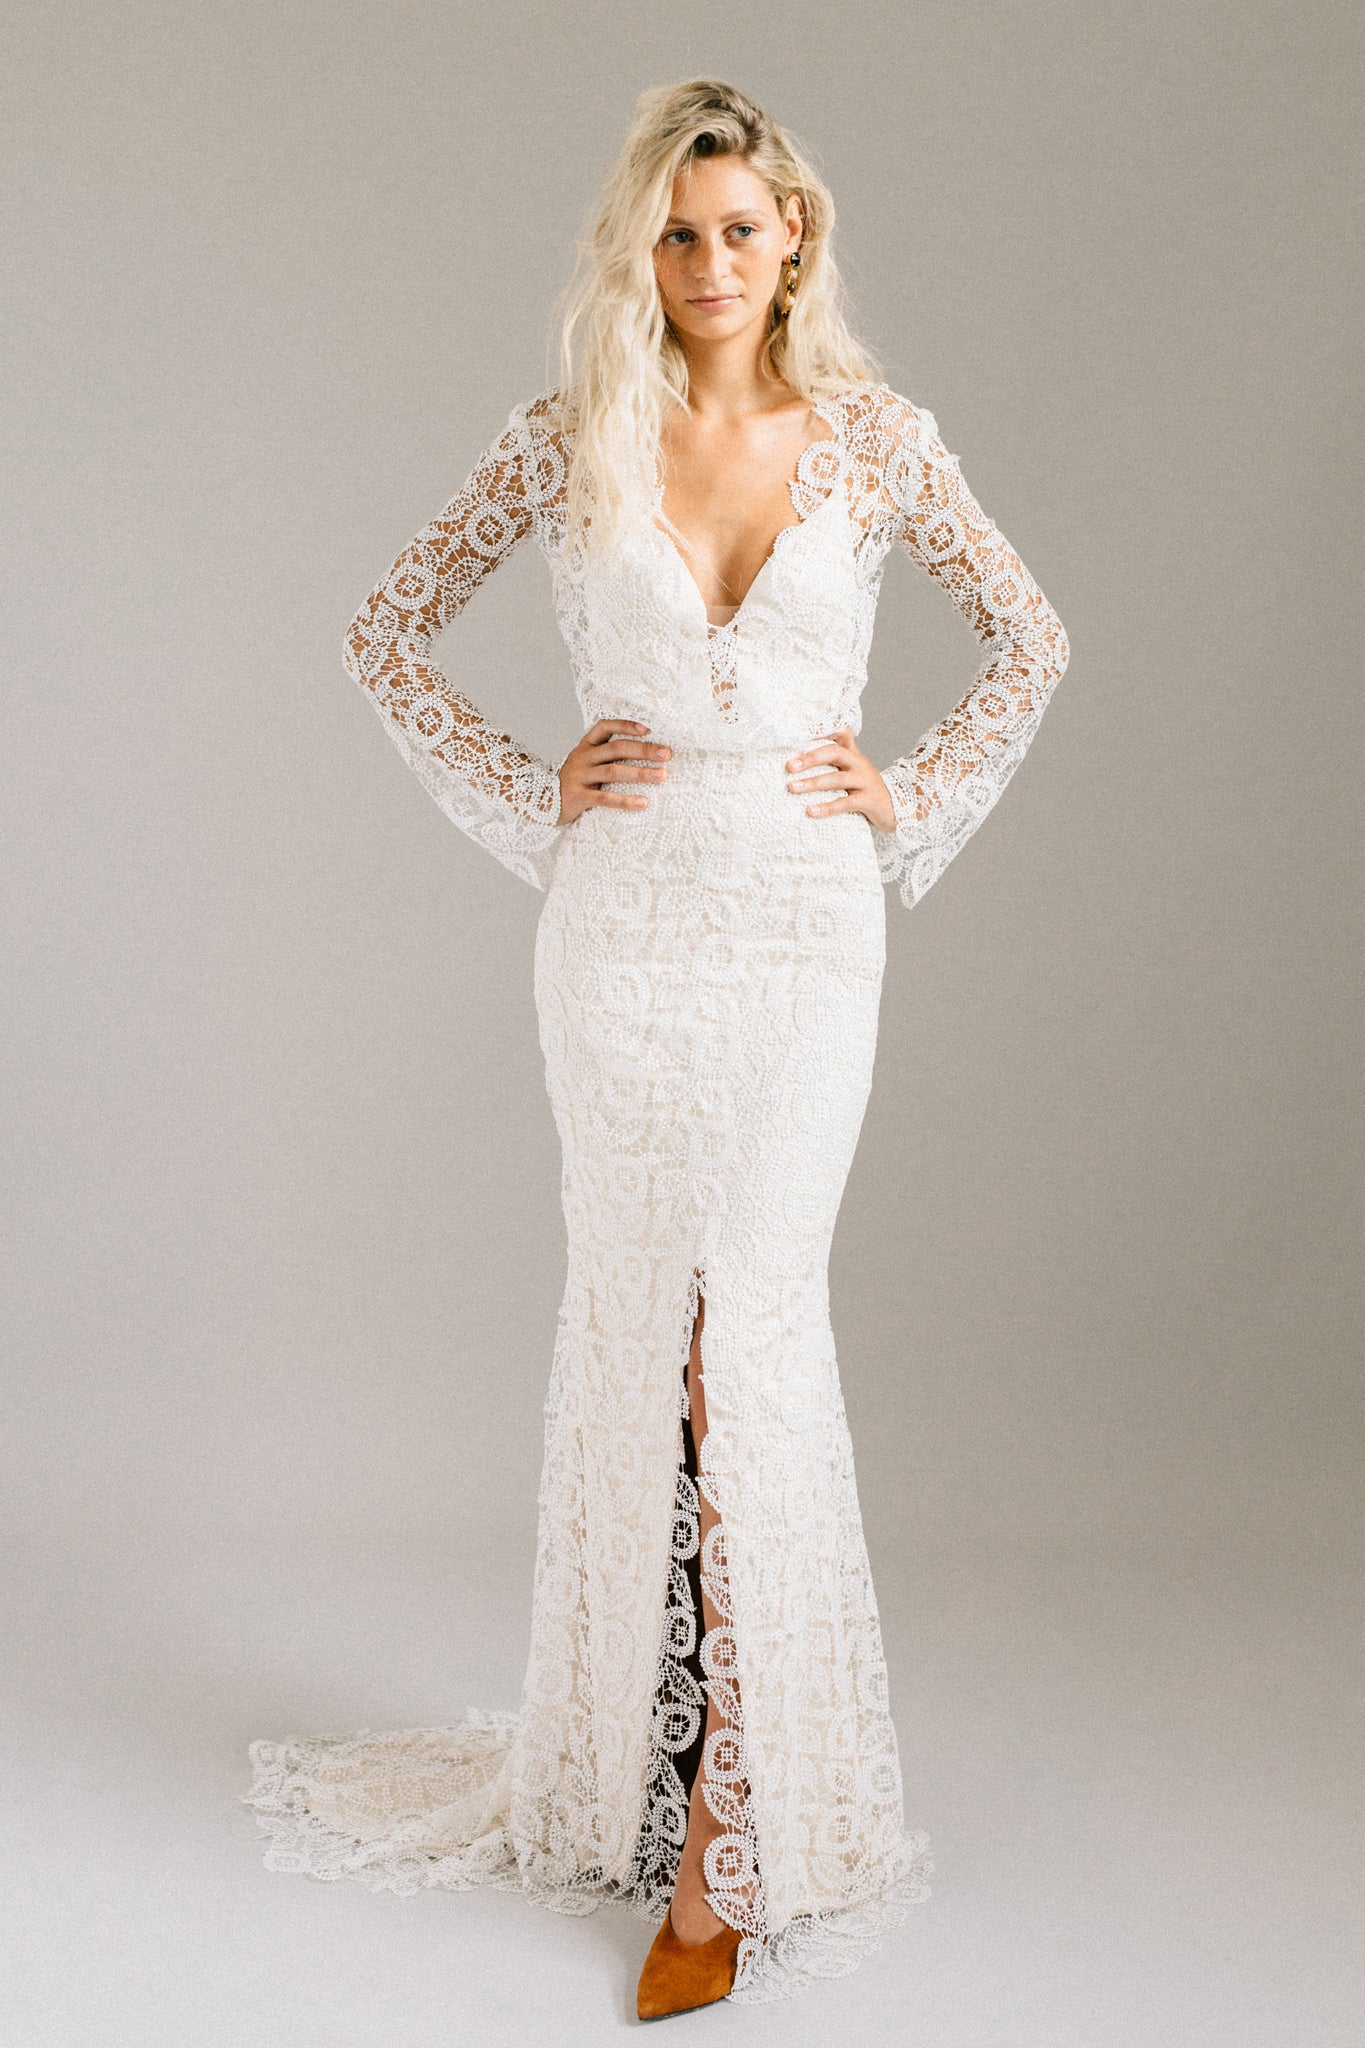 Retro-inspired mermaid wedding dress with bell sleeves, a centre slit, and a short train